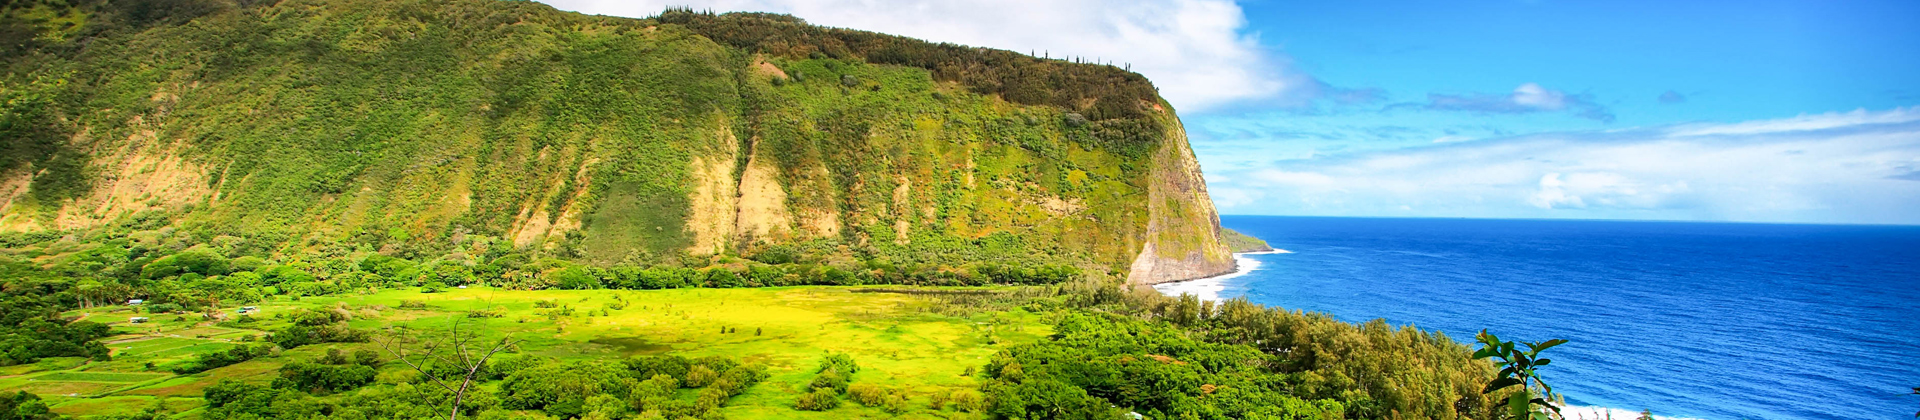 Waipio Valley op the big island in Hawaii